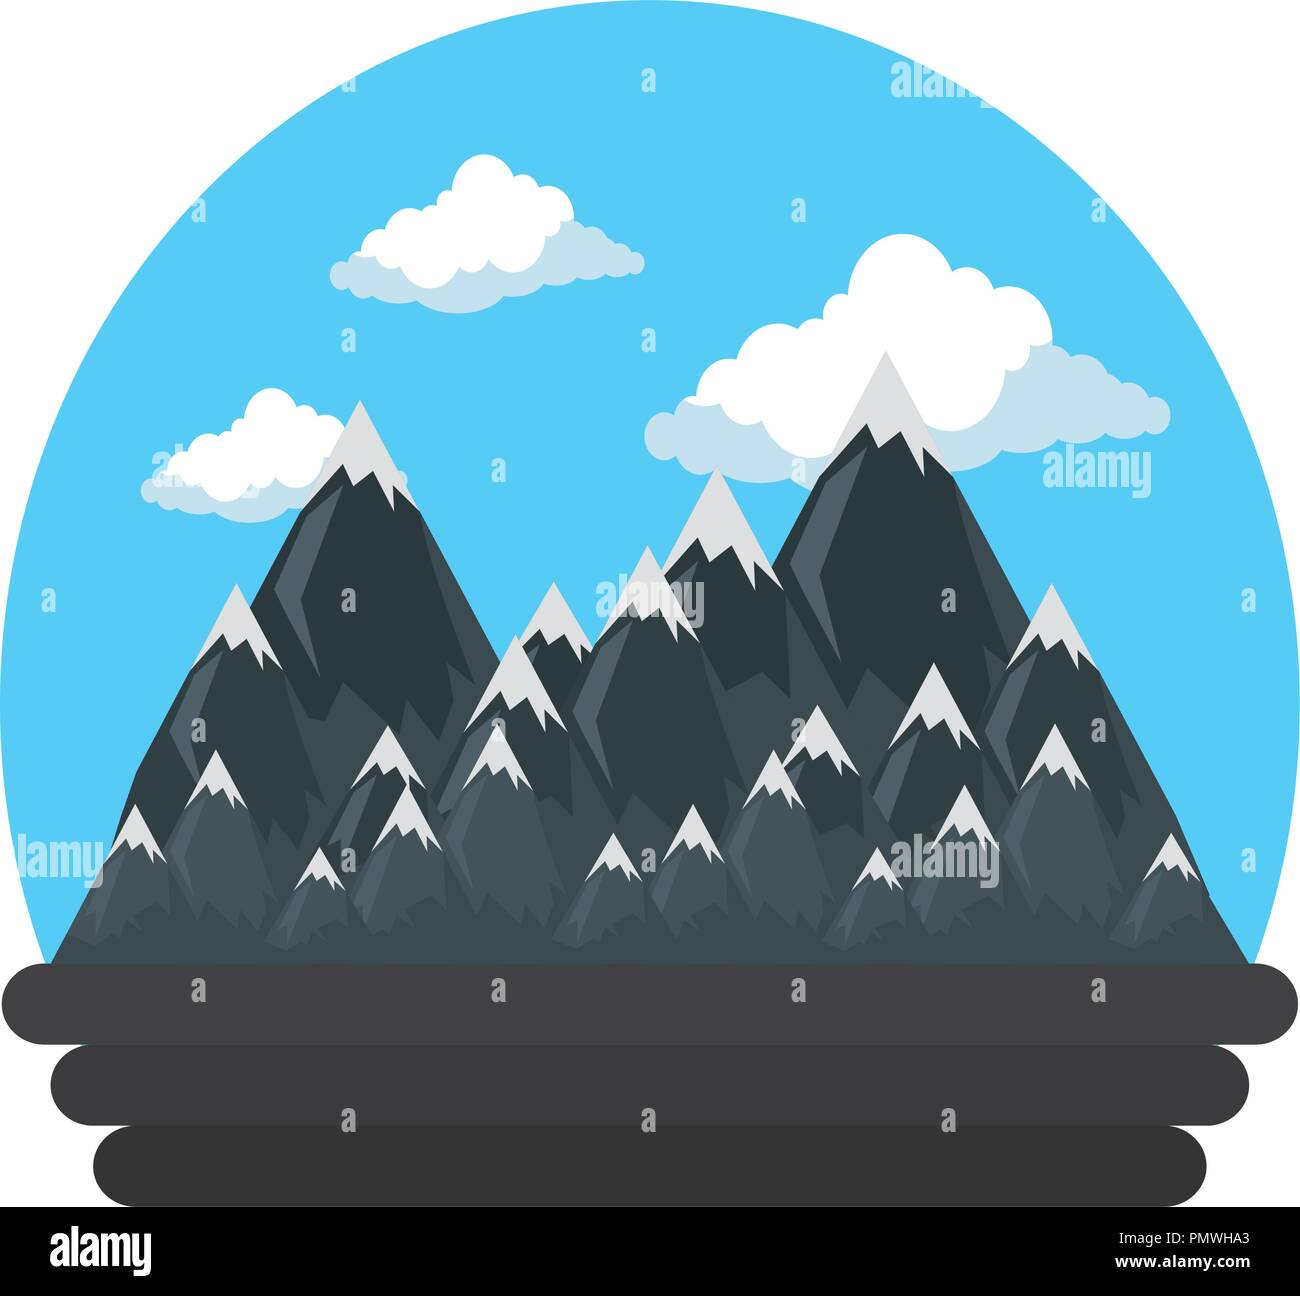 mountains with snow scene - Stock Vector